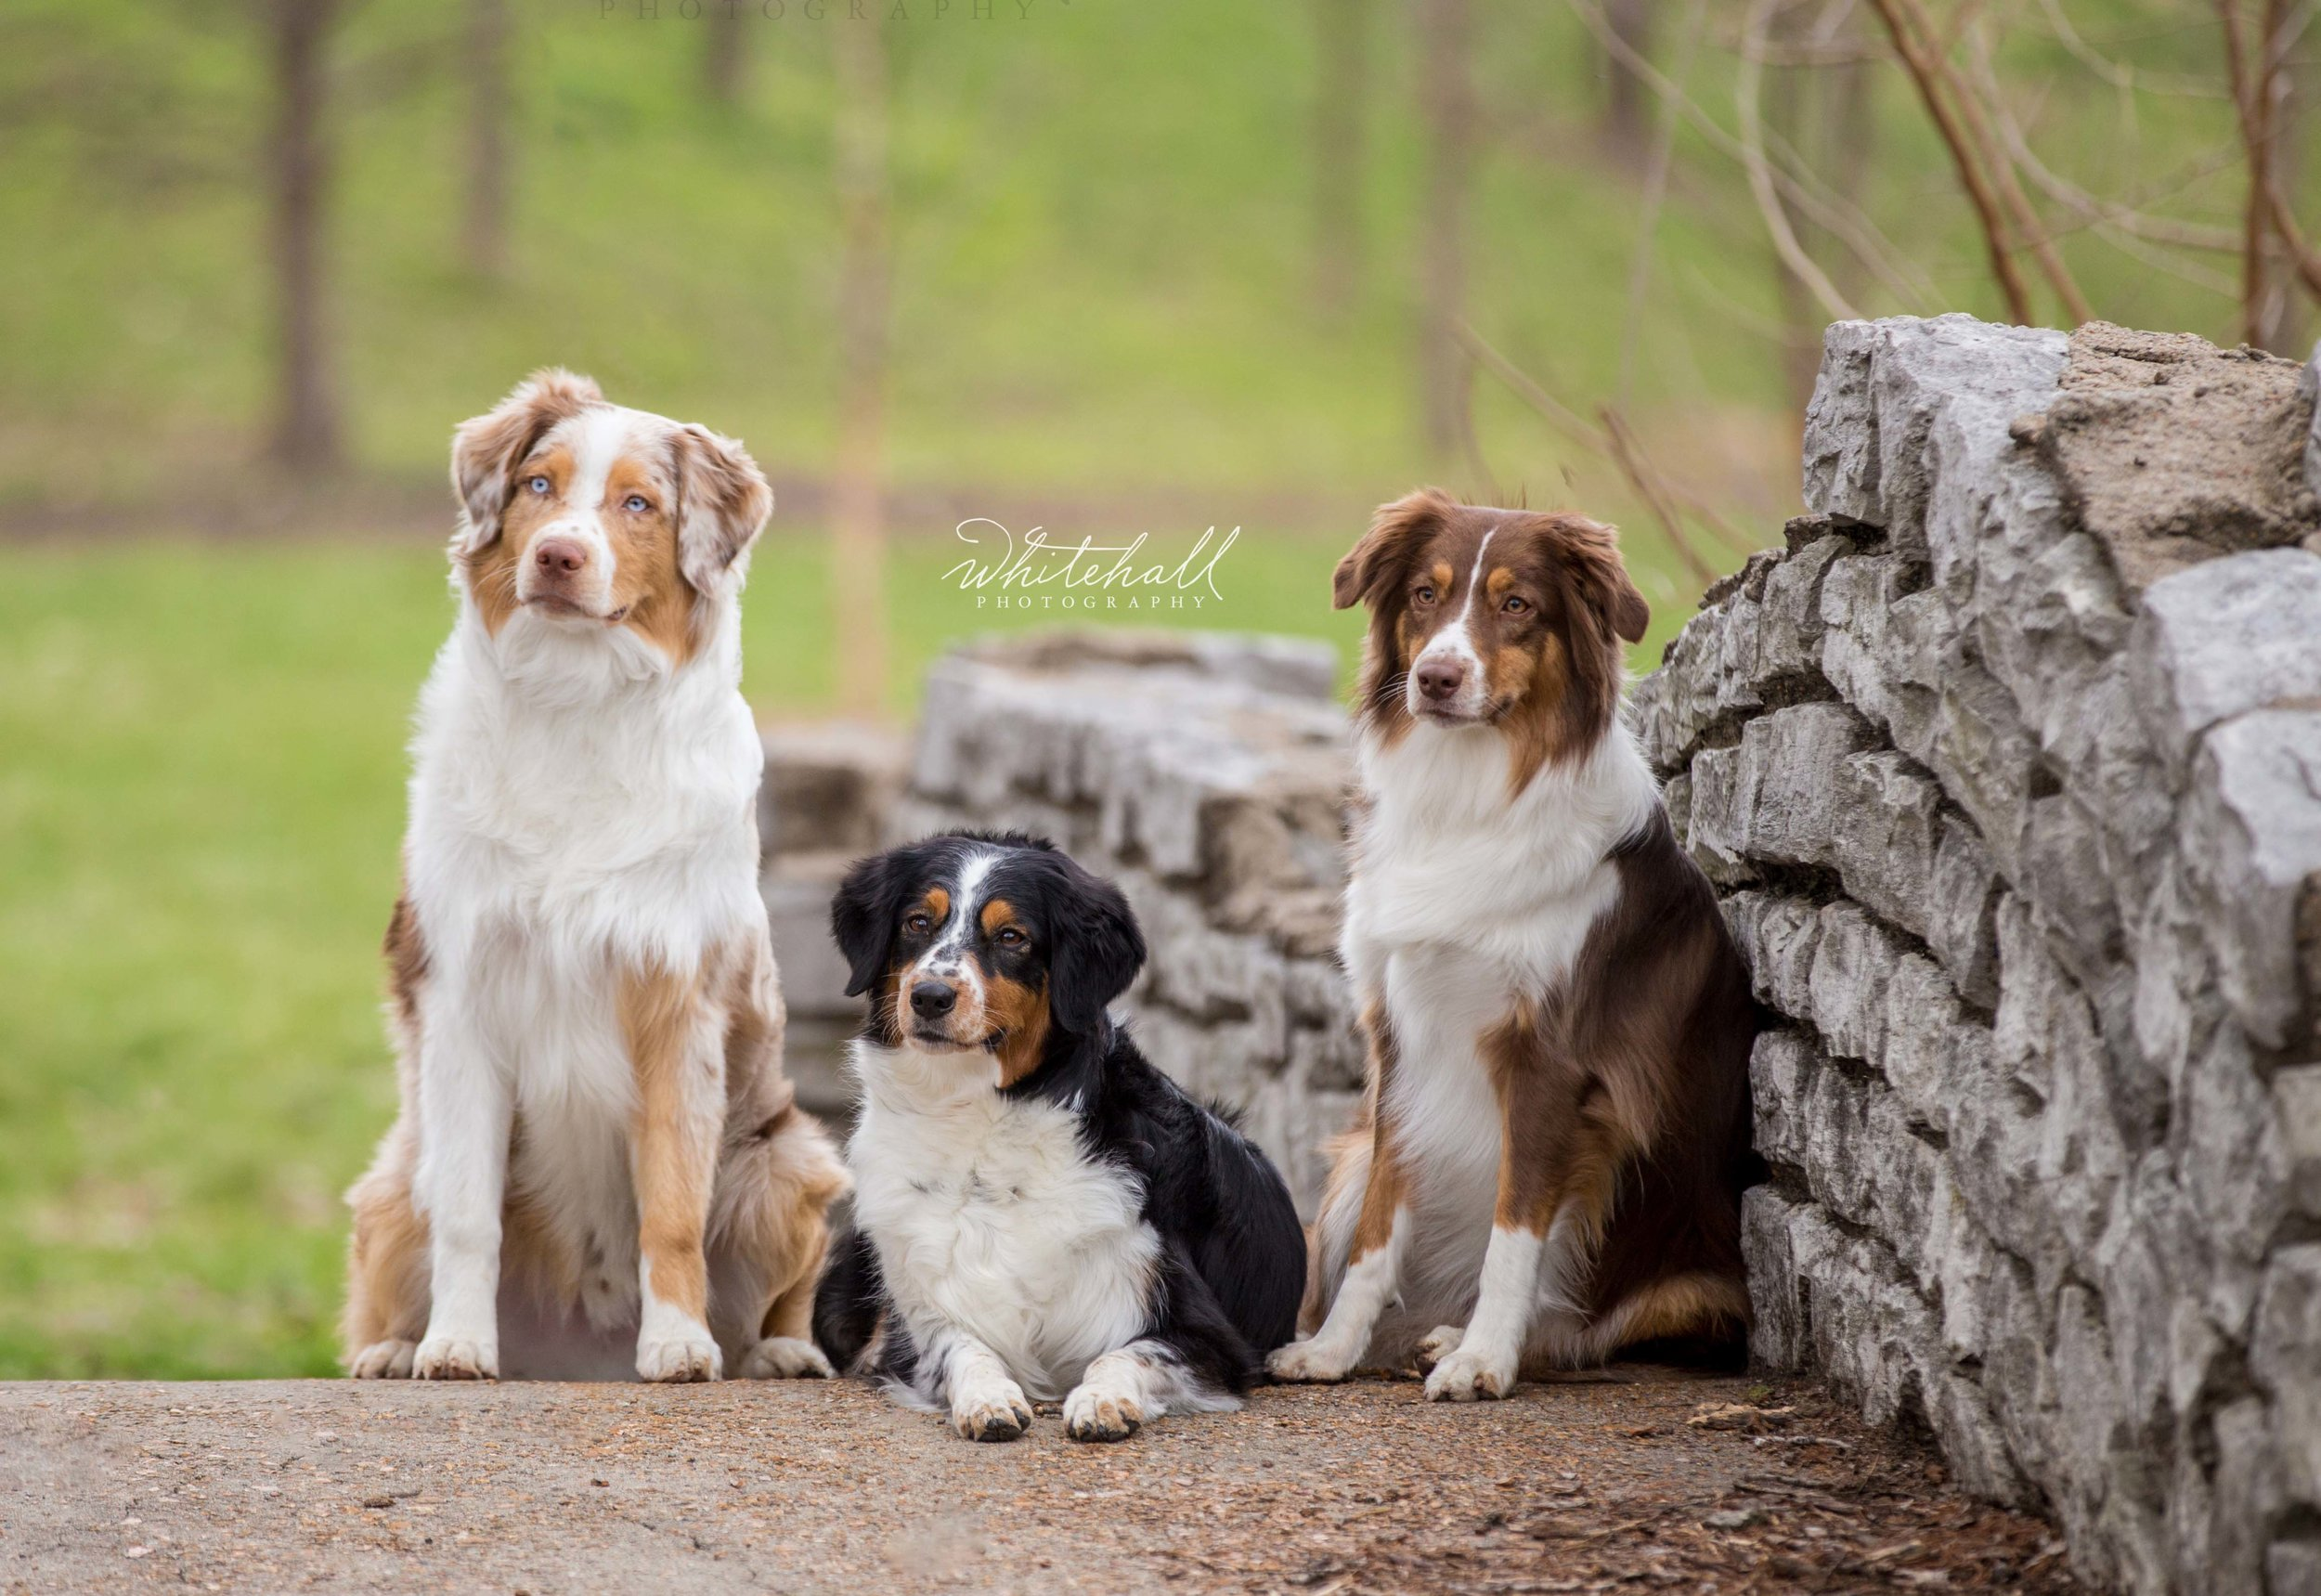 Aussies St Louis Pet Photographer Ballwin Chesterfield Wildwood.jpg